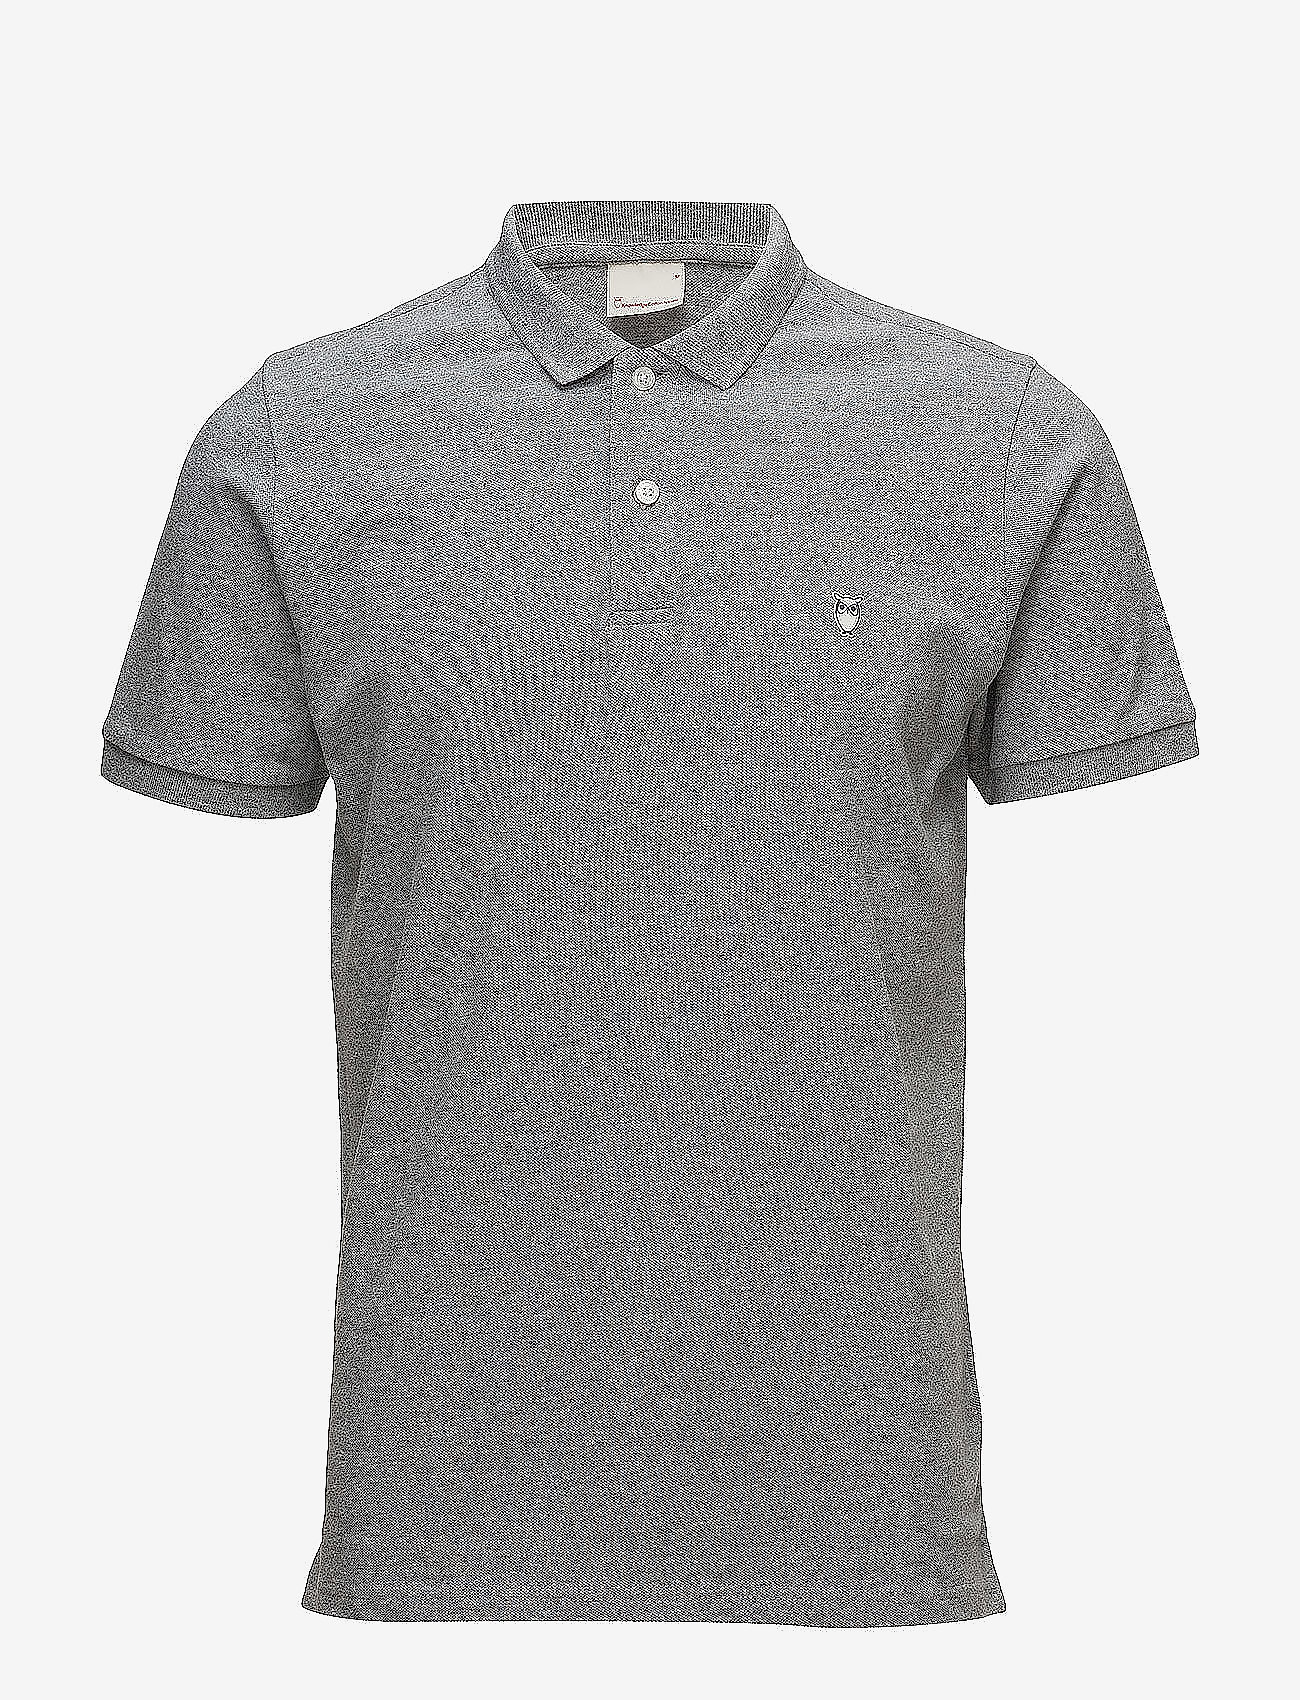 Knowledge Cotton Apparel - Pique Polo -  GOTS/Vegan - lyhythihaiset - grey melange - 0